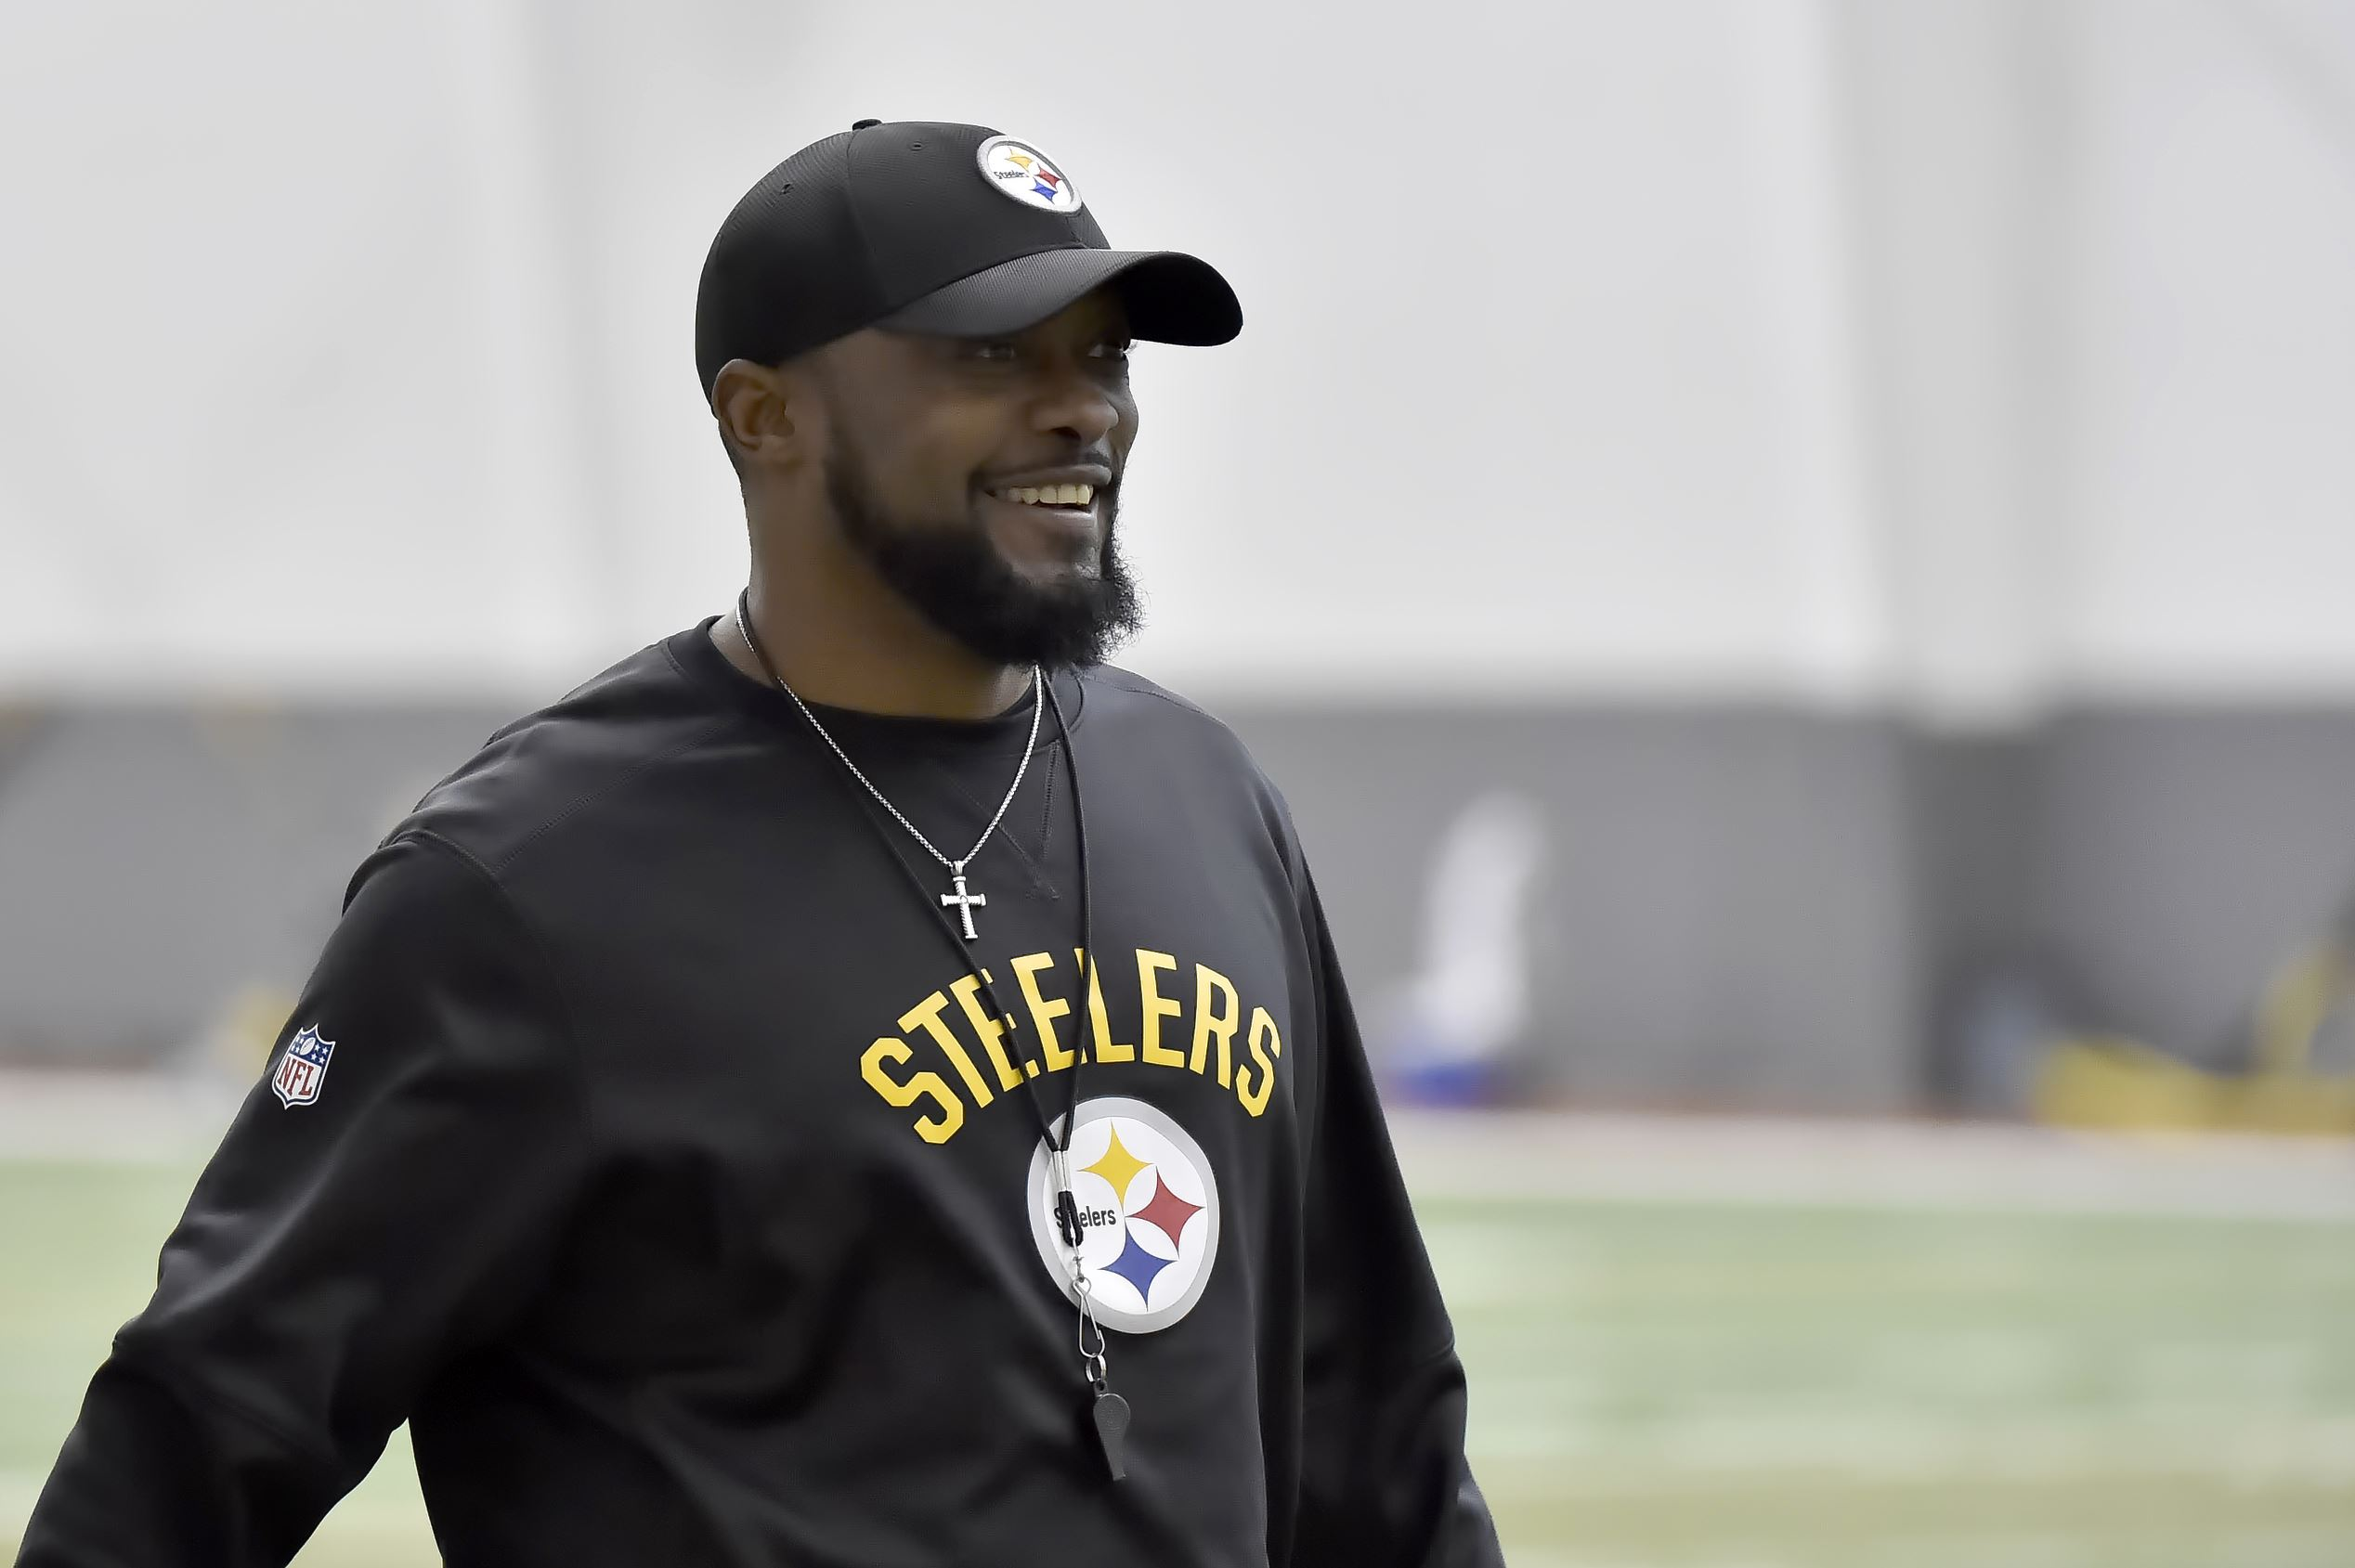 Man arrested for pulling fire alarm at Steelers' hotel